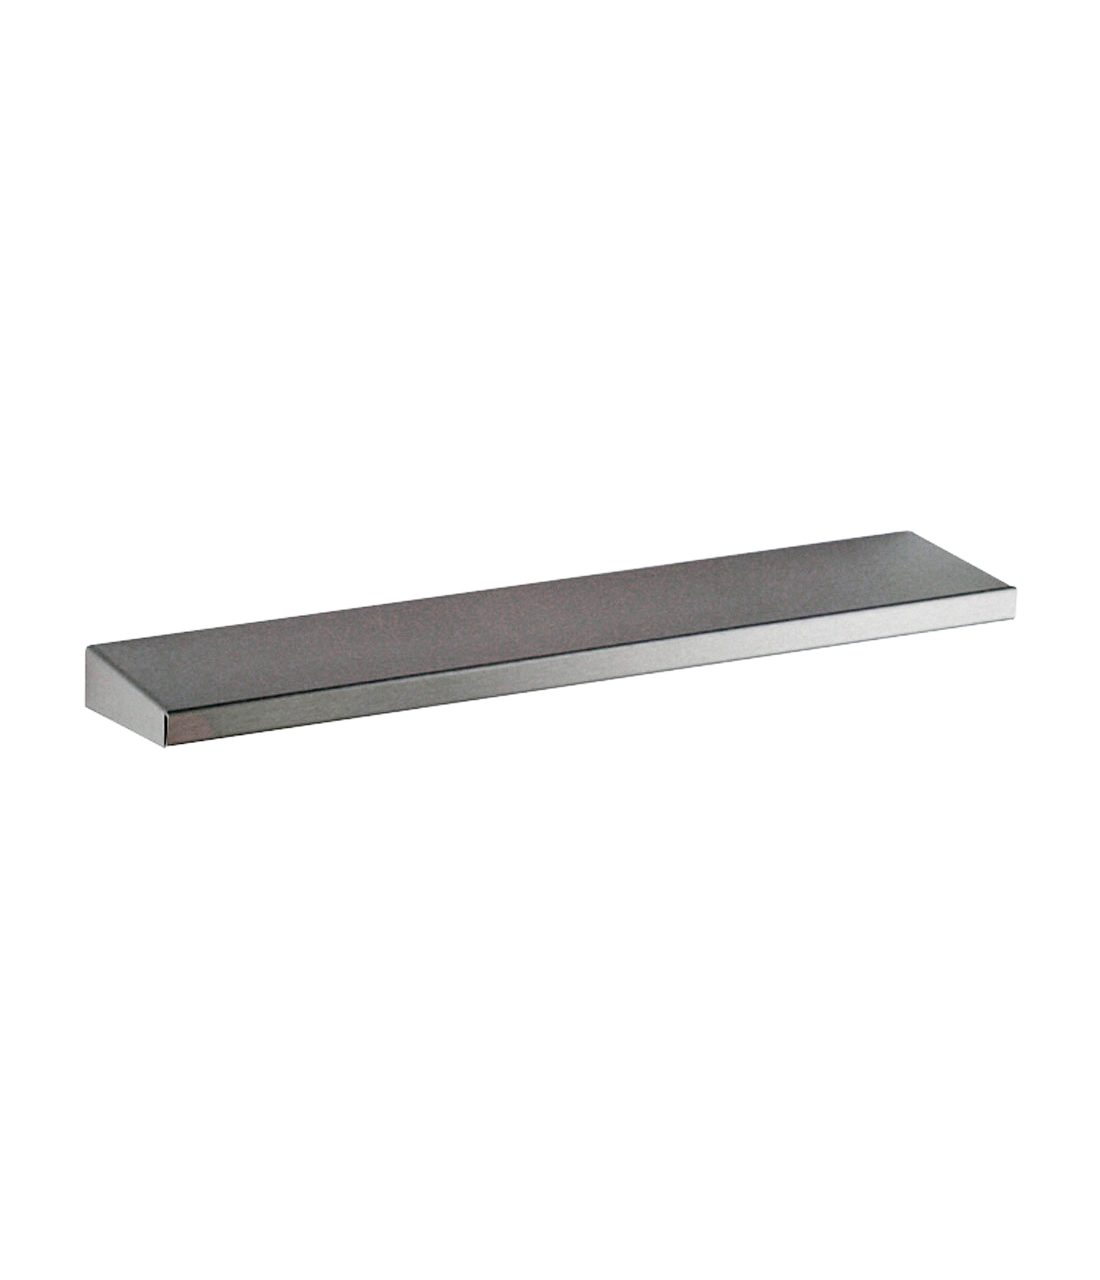 Gamco MS-24 Stainless Steel Mirror Shelf - 24""